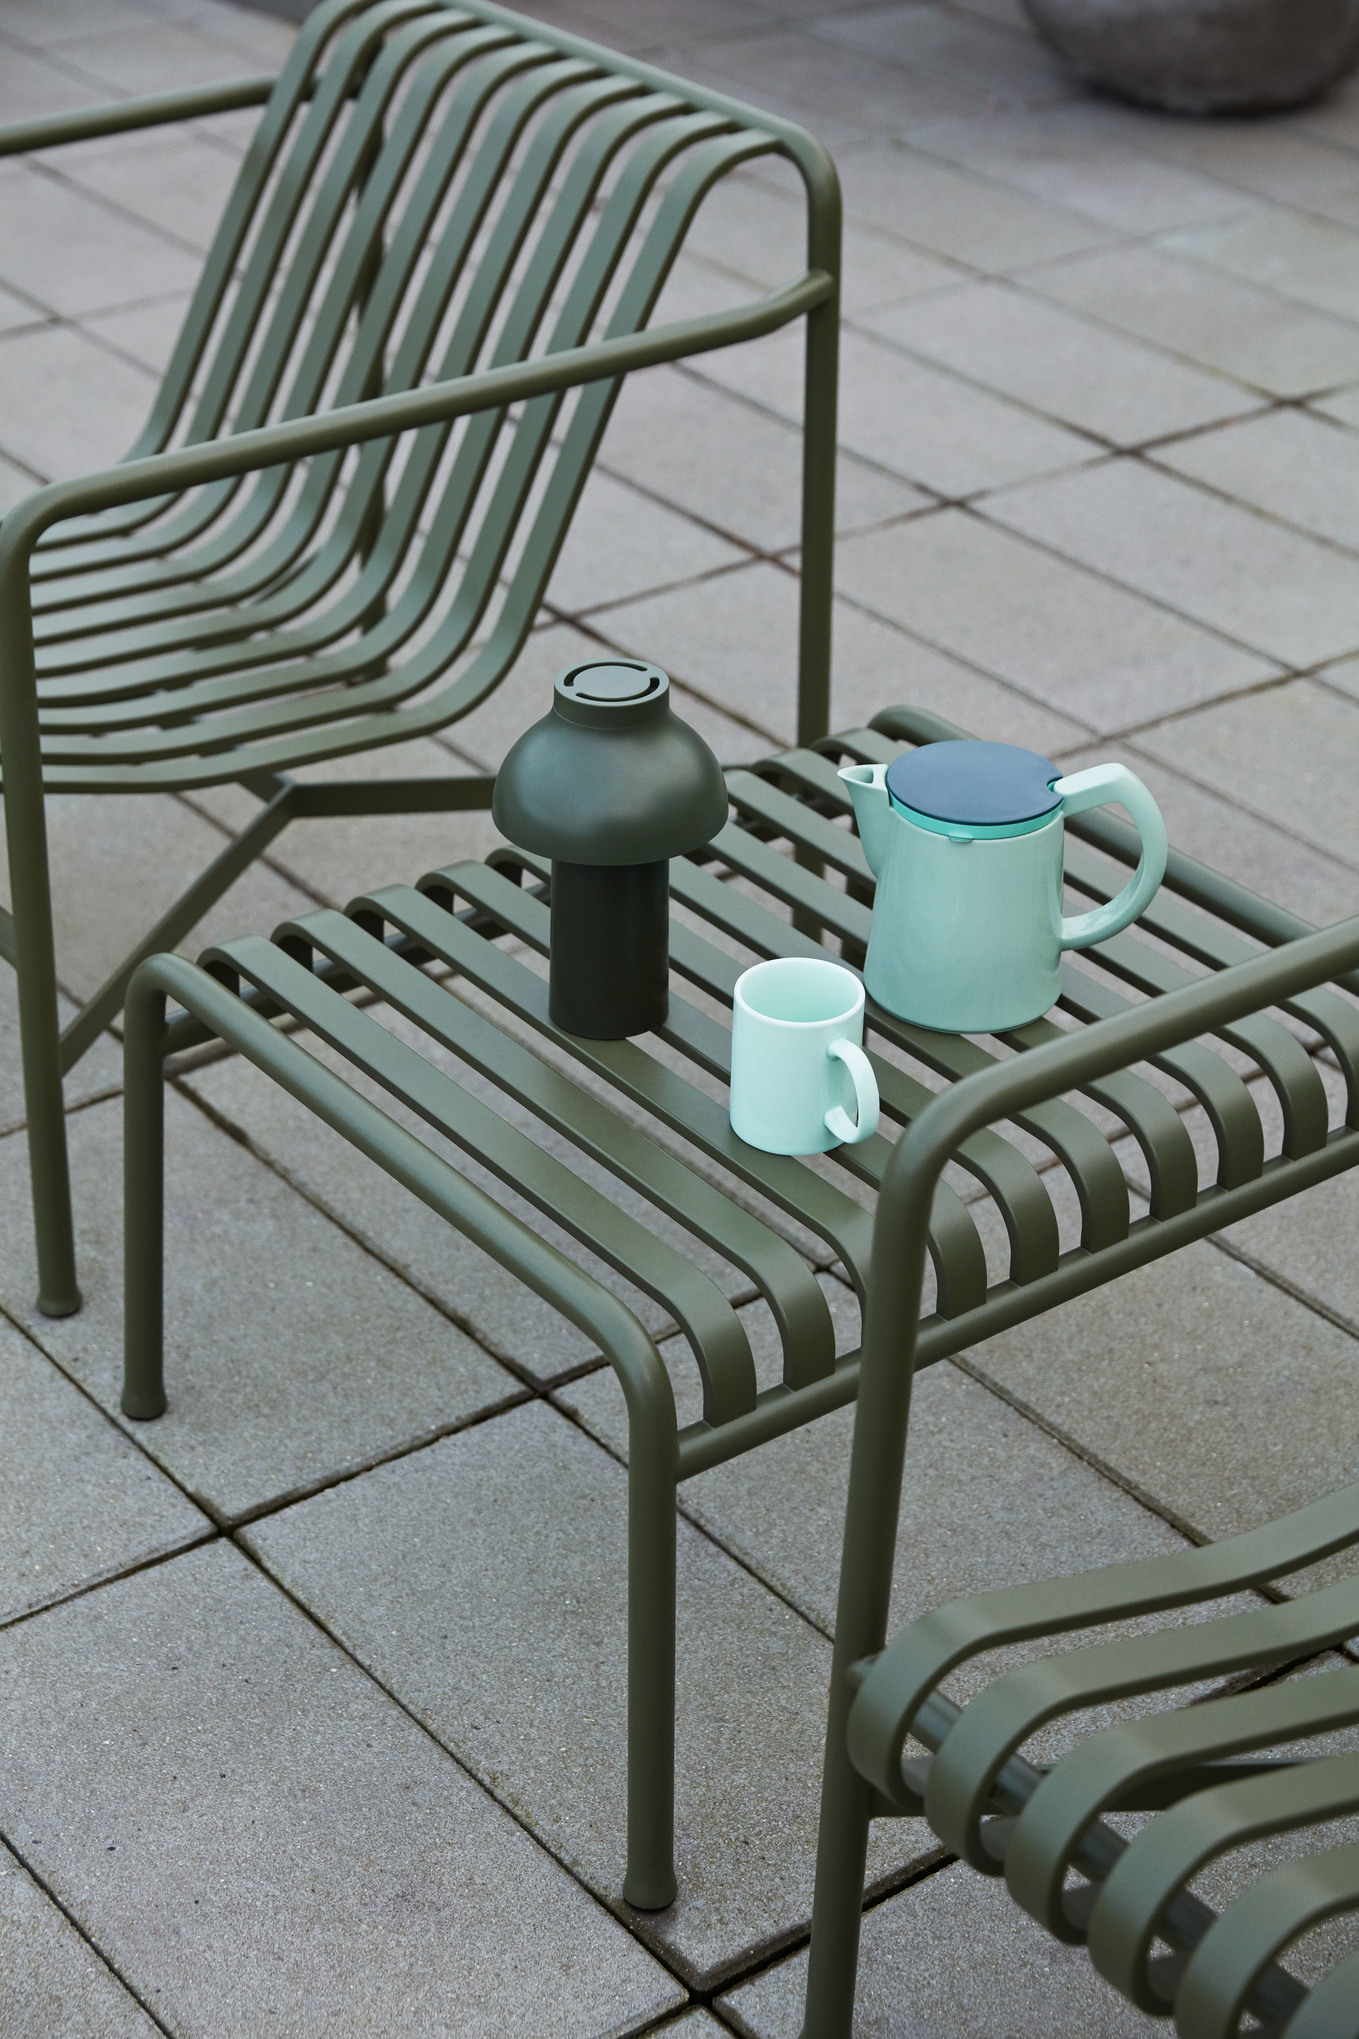 PC Portable olive_Palissade Lounge chair olive_Palissade Table olive_Coffee M mint_Rainbow mug.jpg